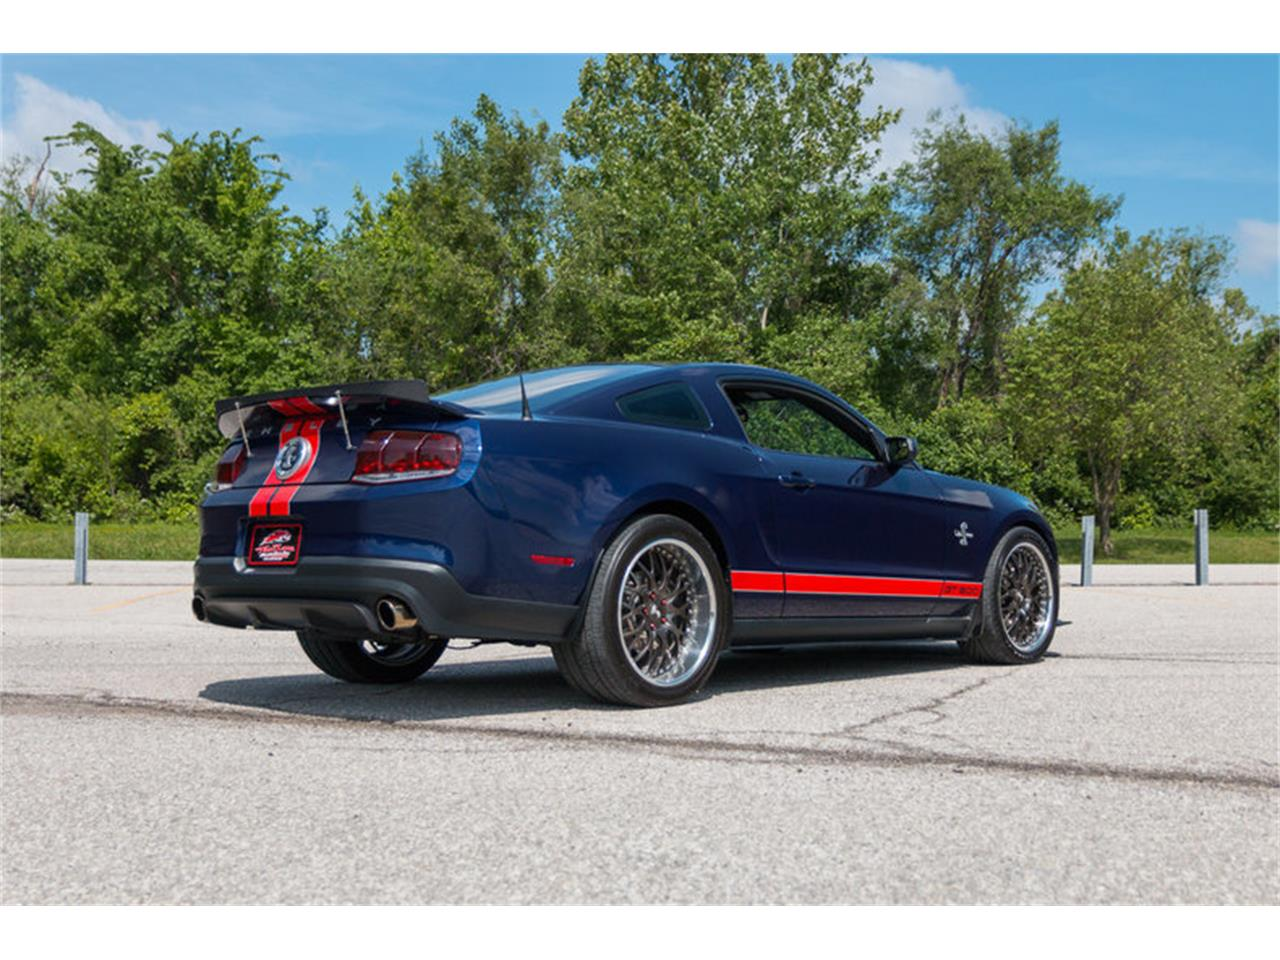 Large Picture of 2011 GT500 located in St. Charles Missouri - $54,995.00 Offered by Fast Lane Classic Cars Inc. - L3G7